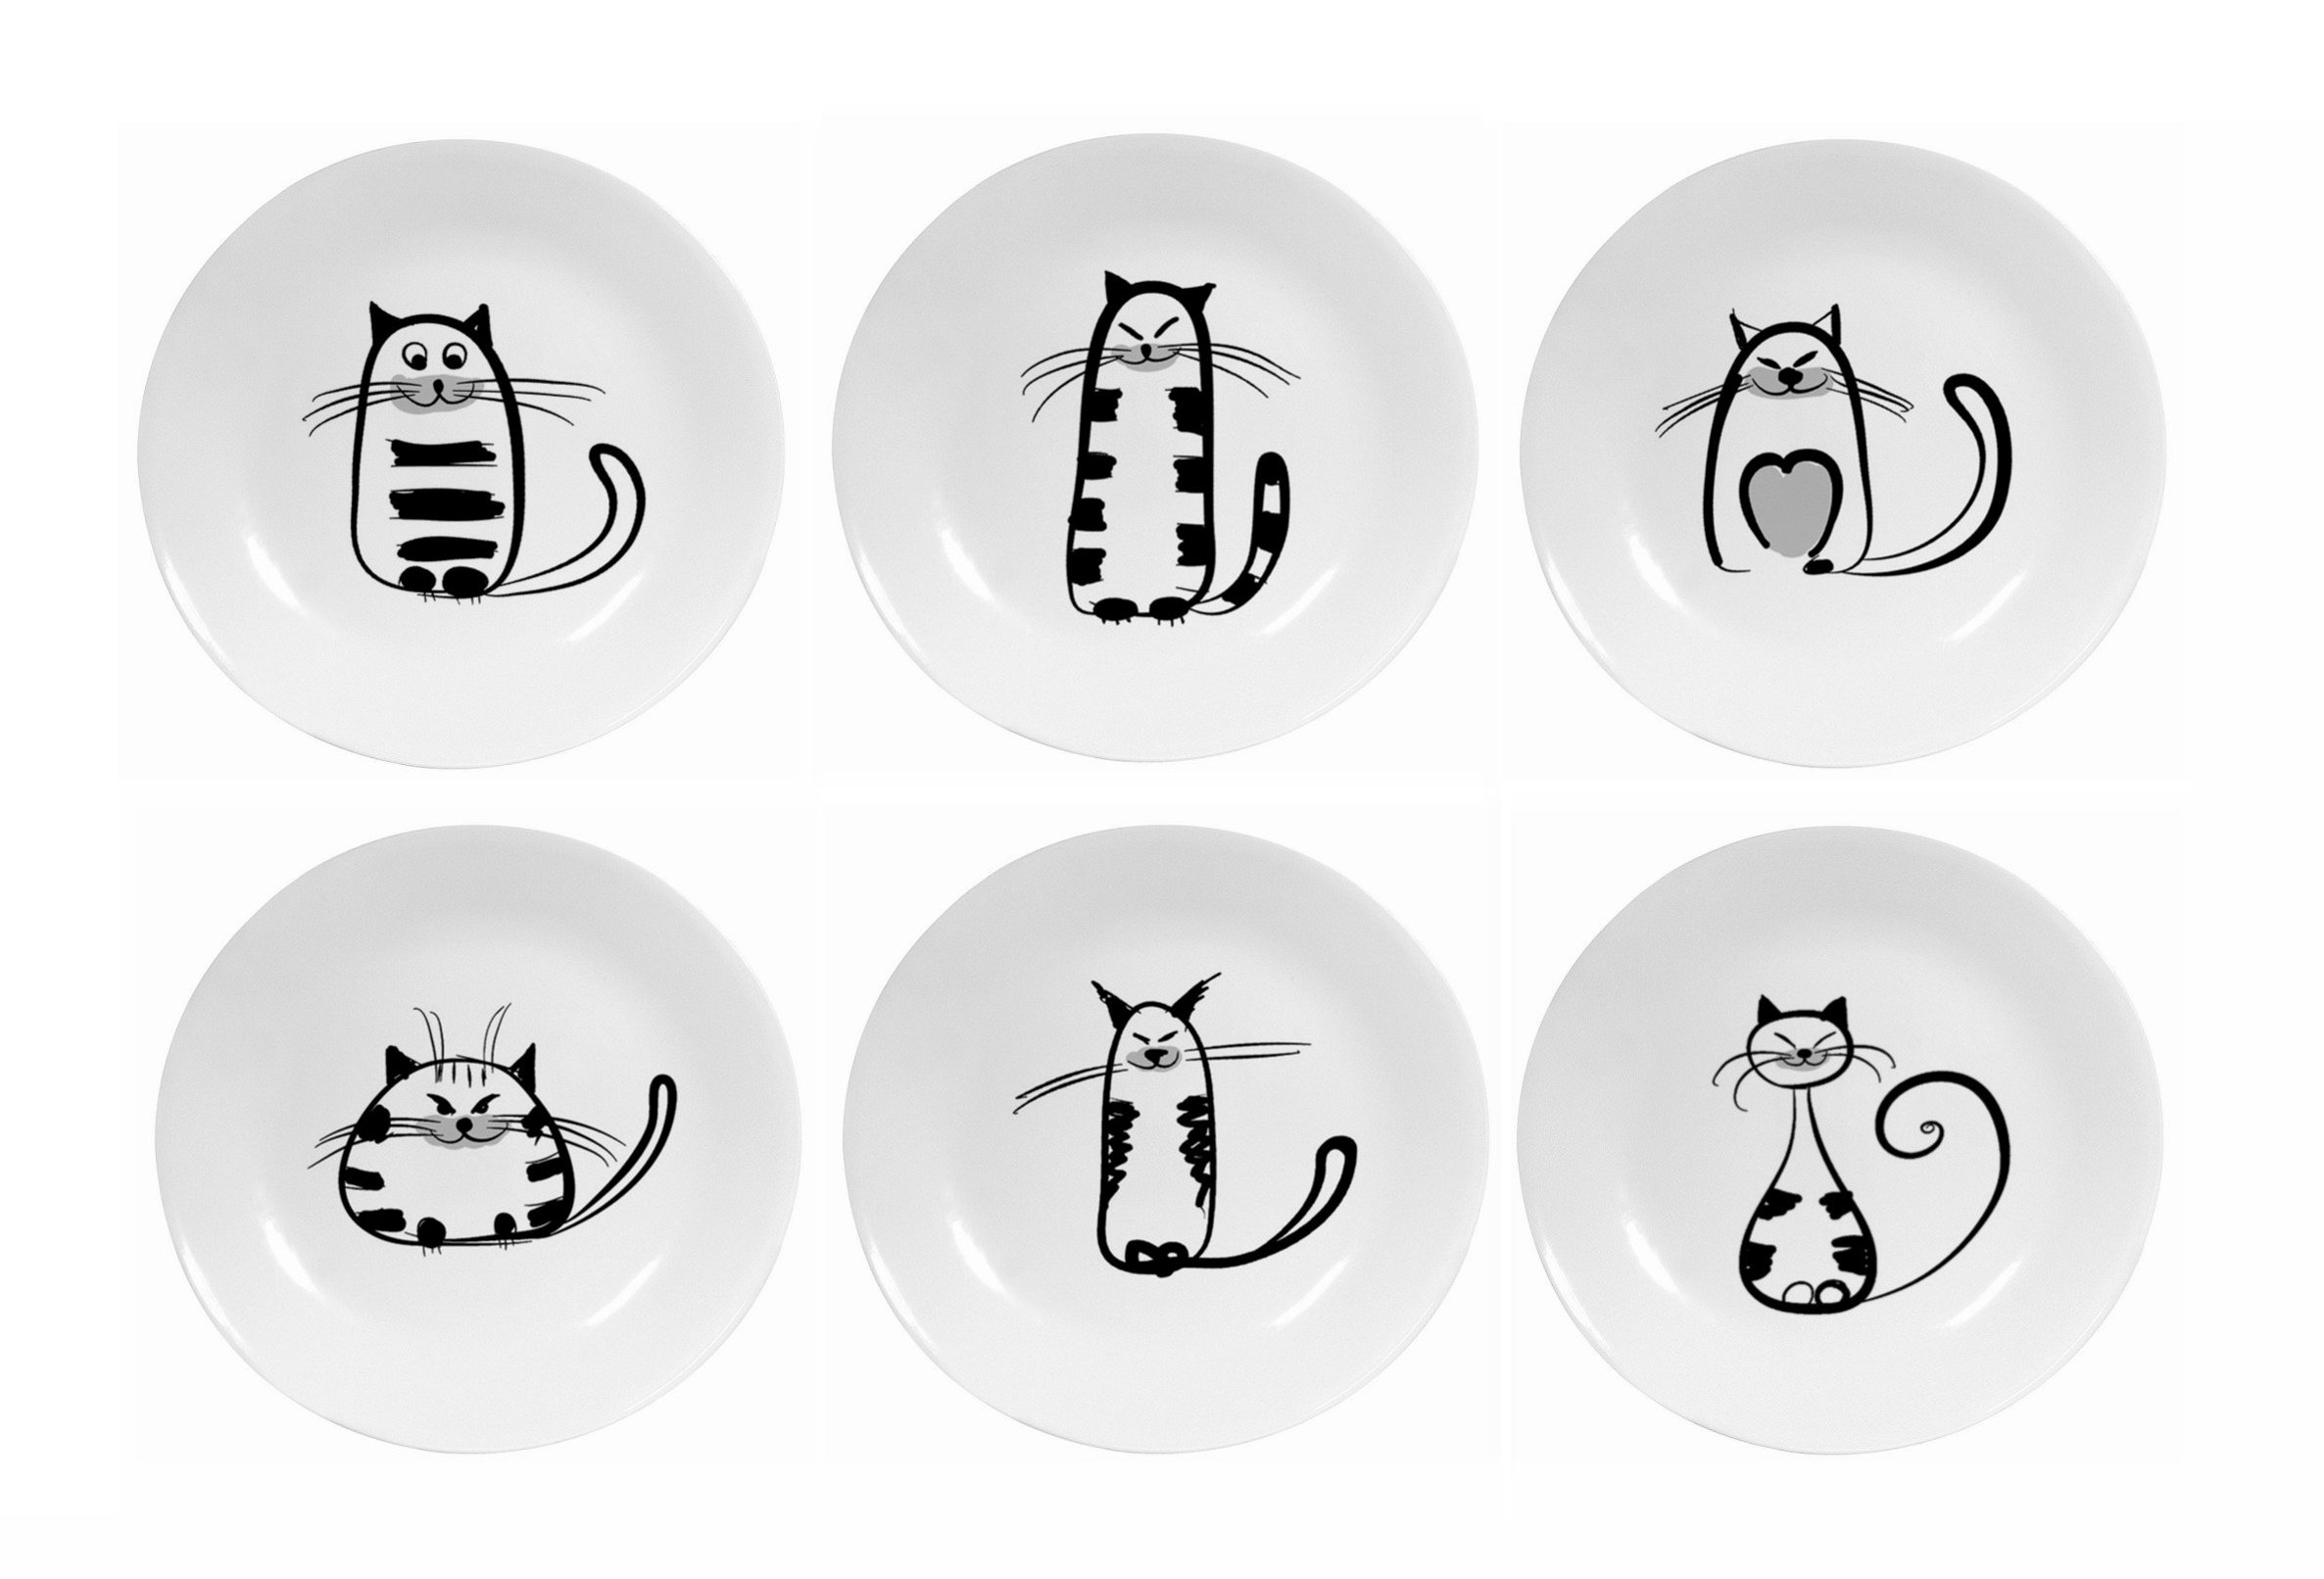 Hoocozi Small Size Resuable Round Ceramic Cat Pattern Saucer Plates, Porcelain Seasoning Dishes Tea Cup Holders by, 6Pcs, White by Hoocozi